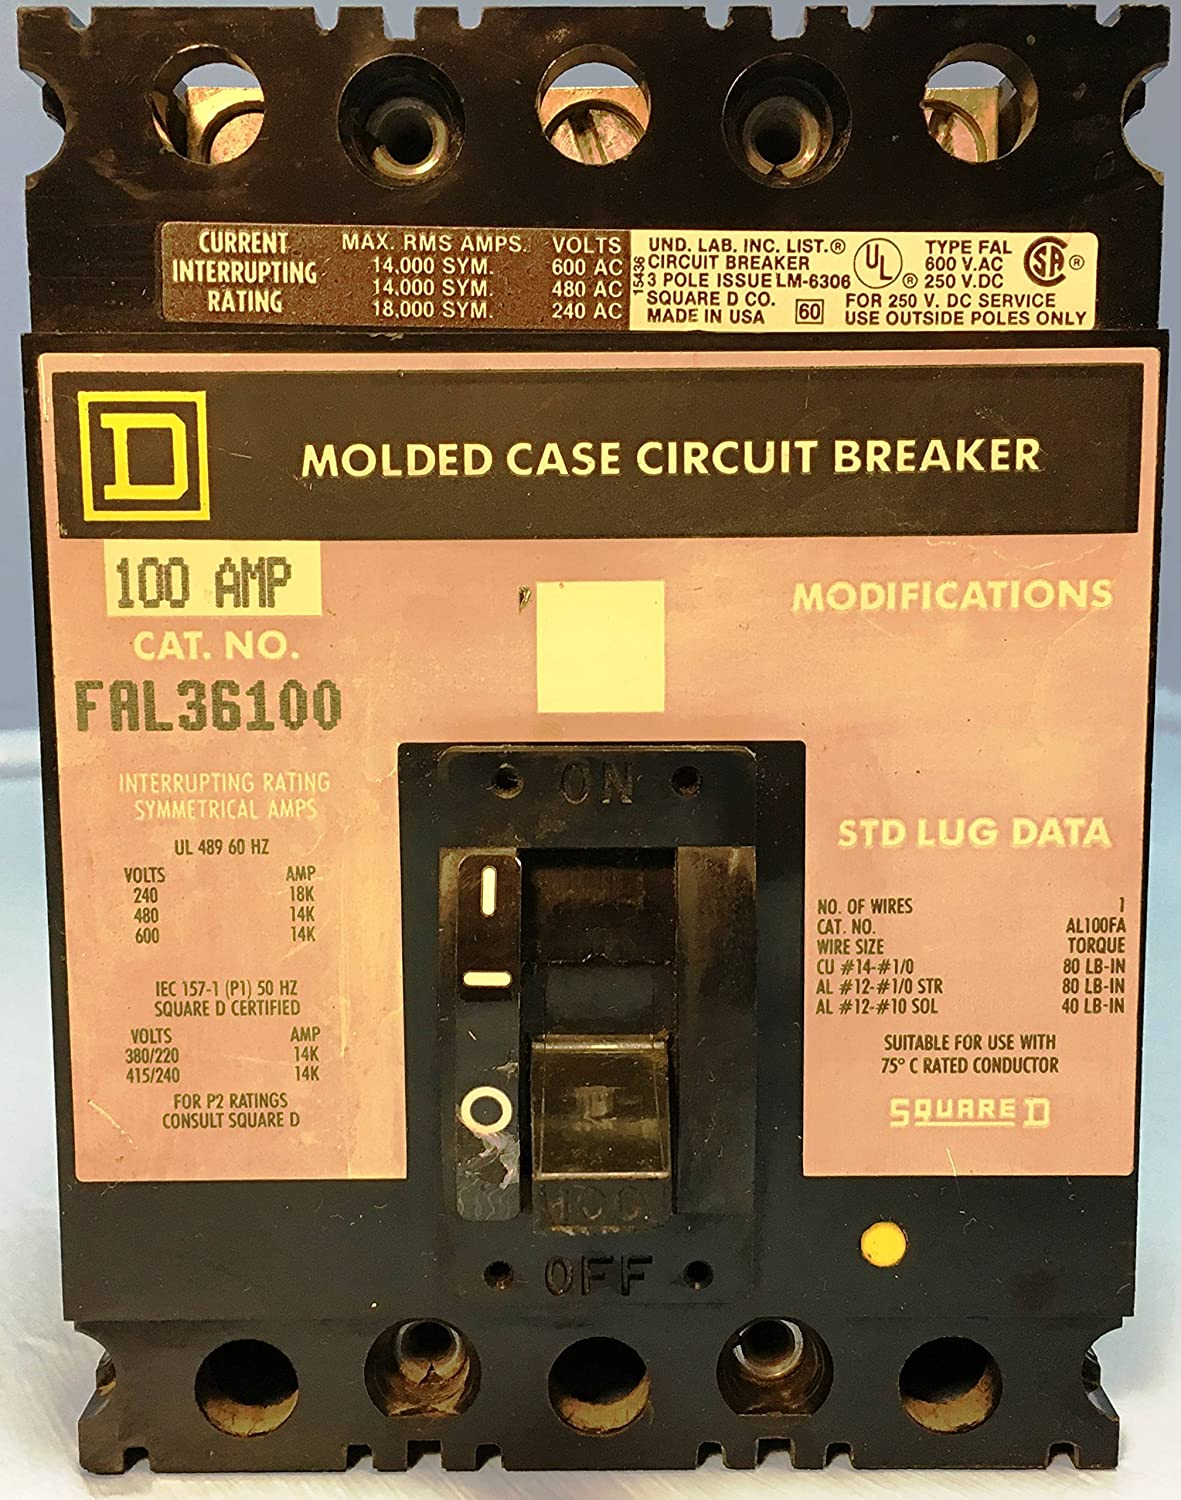 Square D Fal36100 Circuit Breaker Used Industrial Ac Wiring Scientific